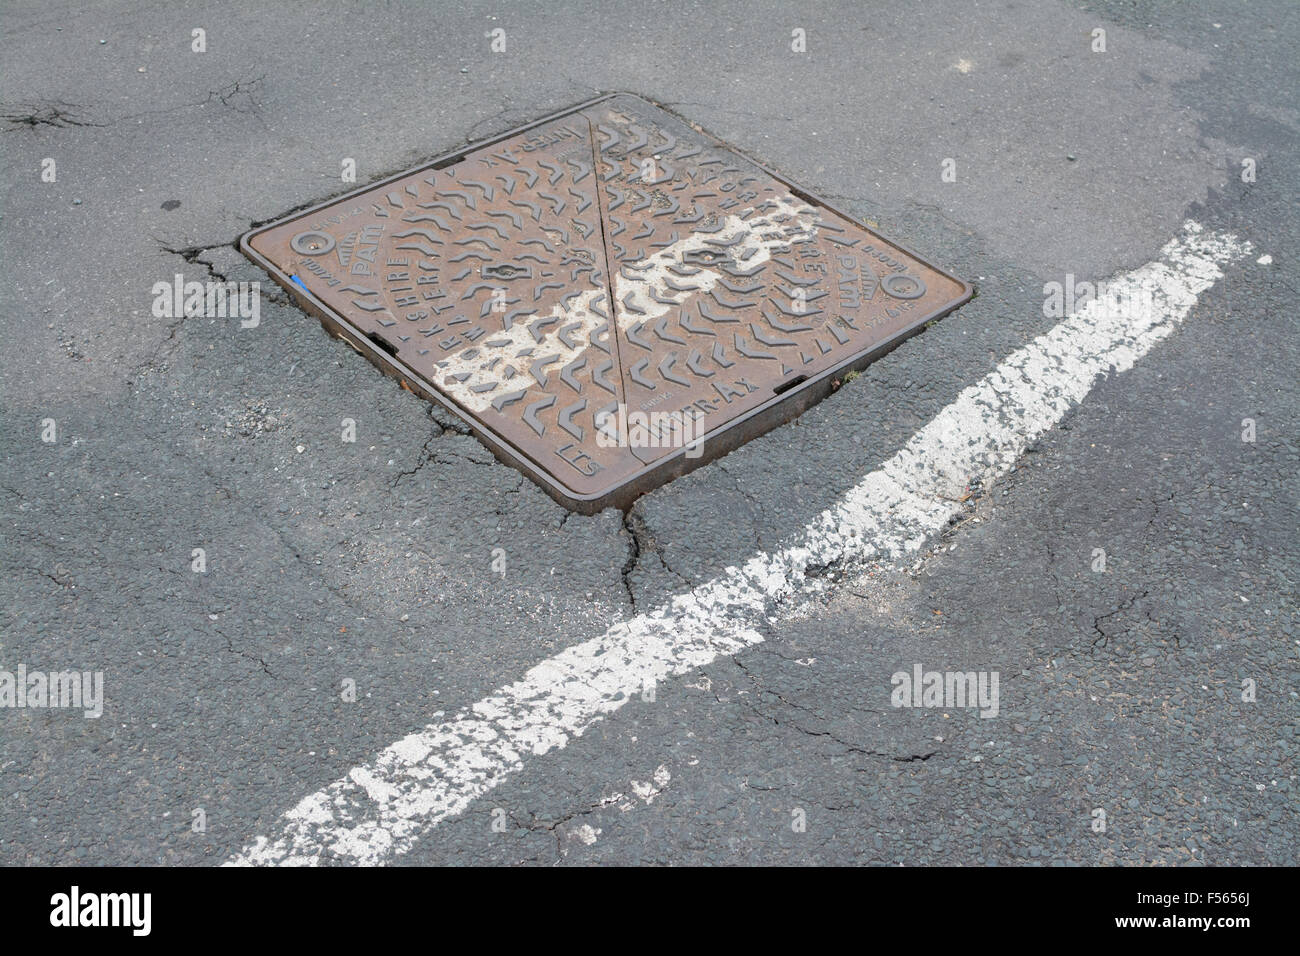 Public road cracking and sinking around drain access cover giving a  large pot hole - Sheffield, South Yorkshire, - Stock Image